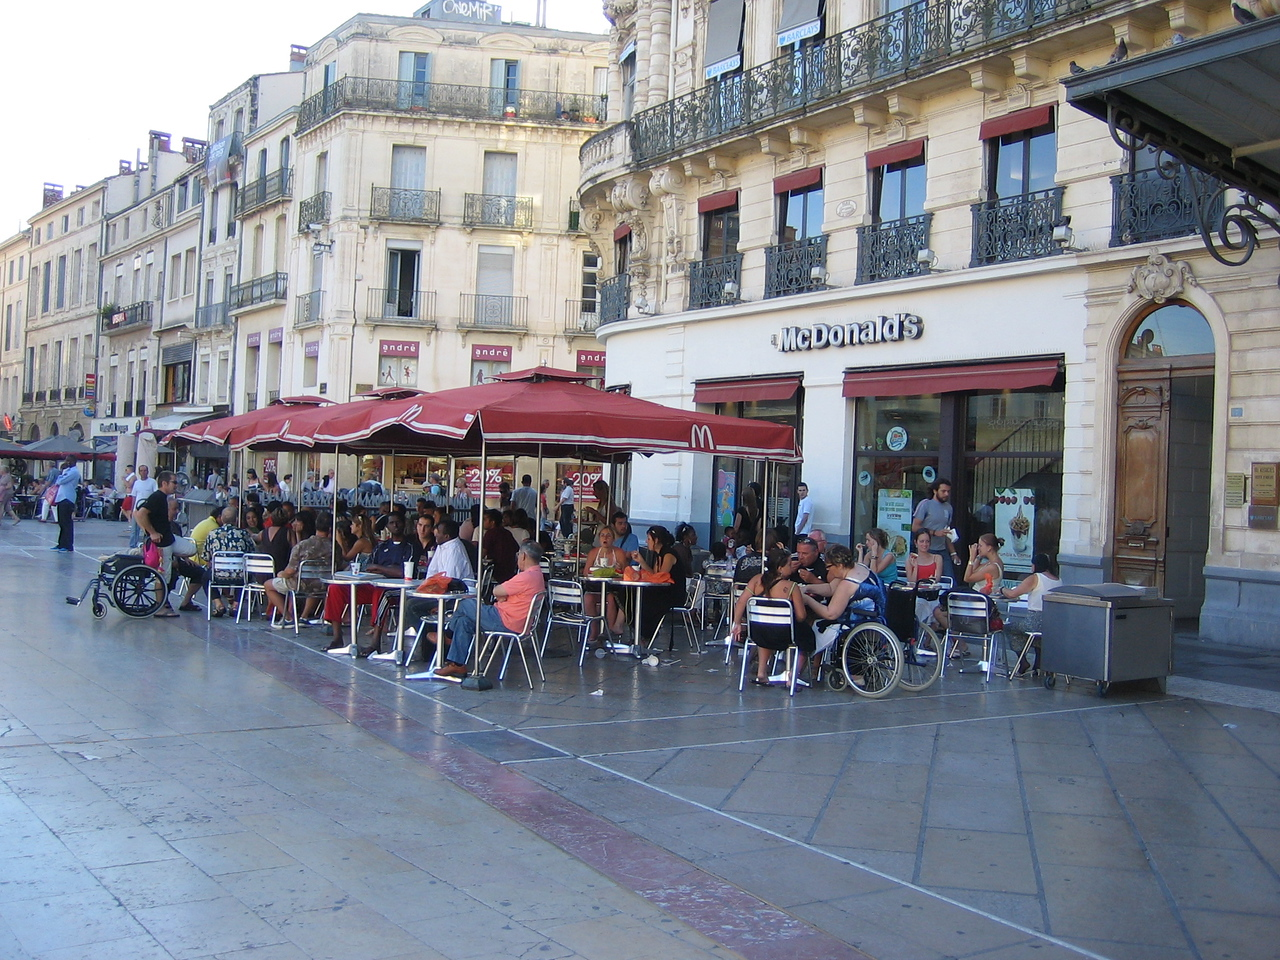 Even McDonalds has an outdoor patio that blends in with the rest of the restaurants on the square. Location - Montpellier